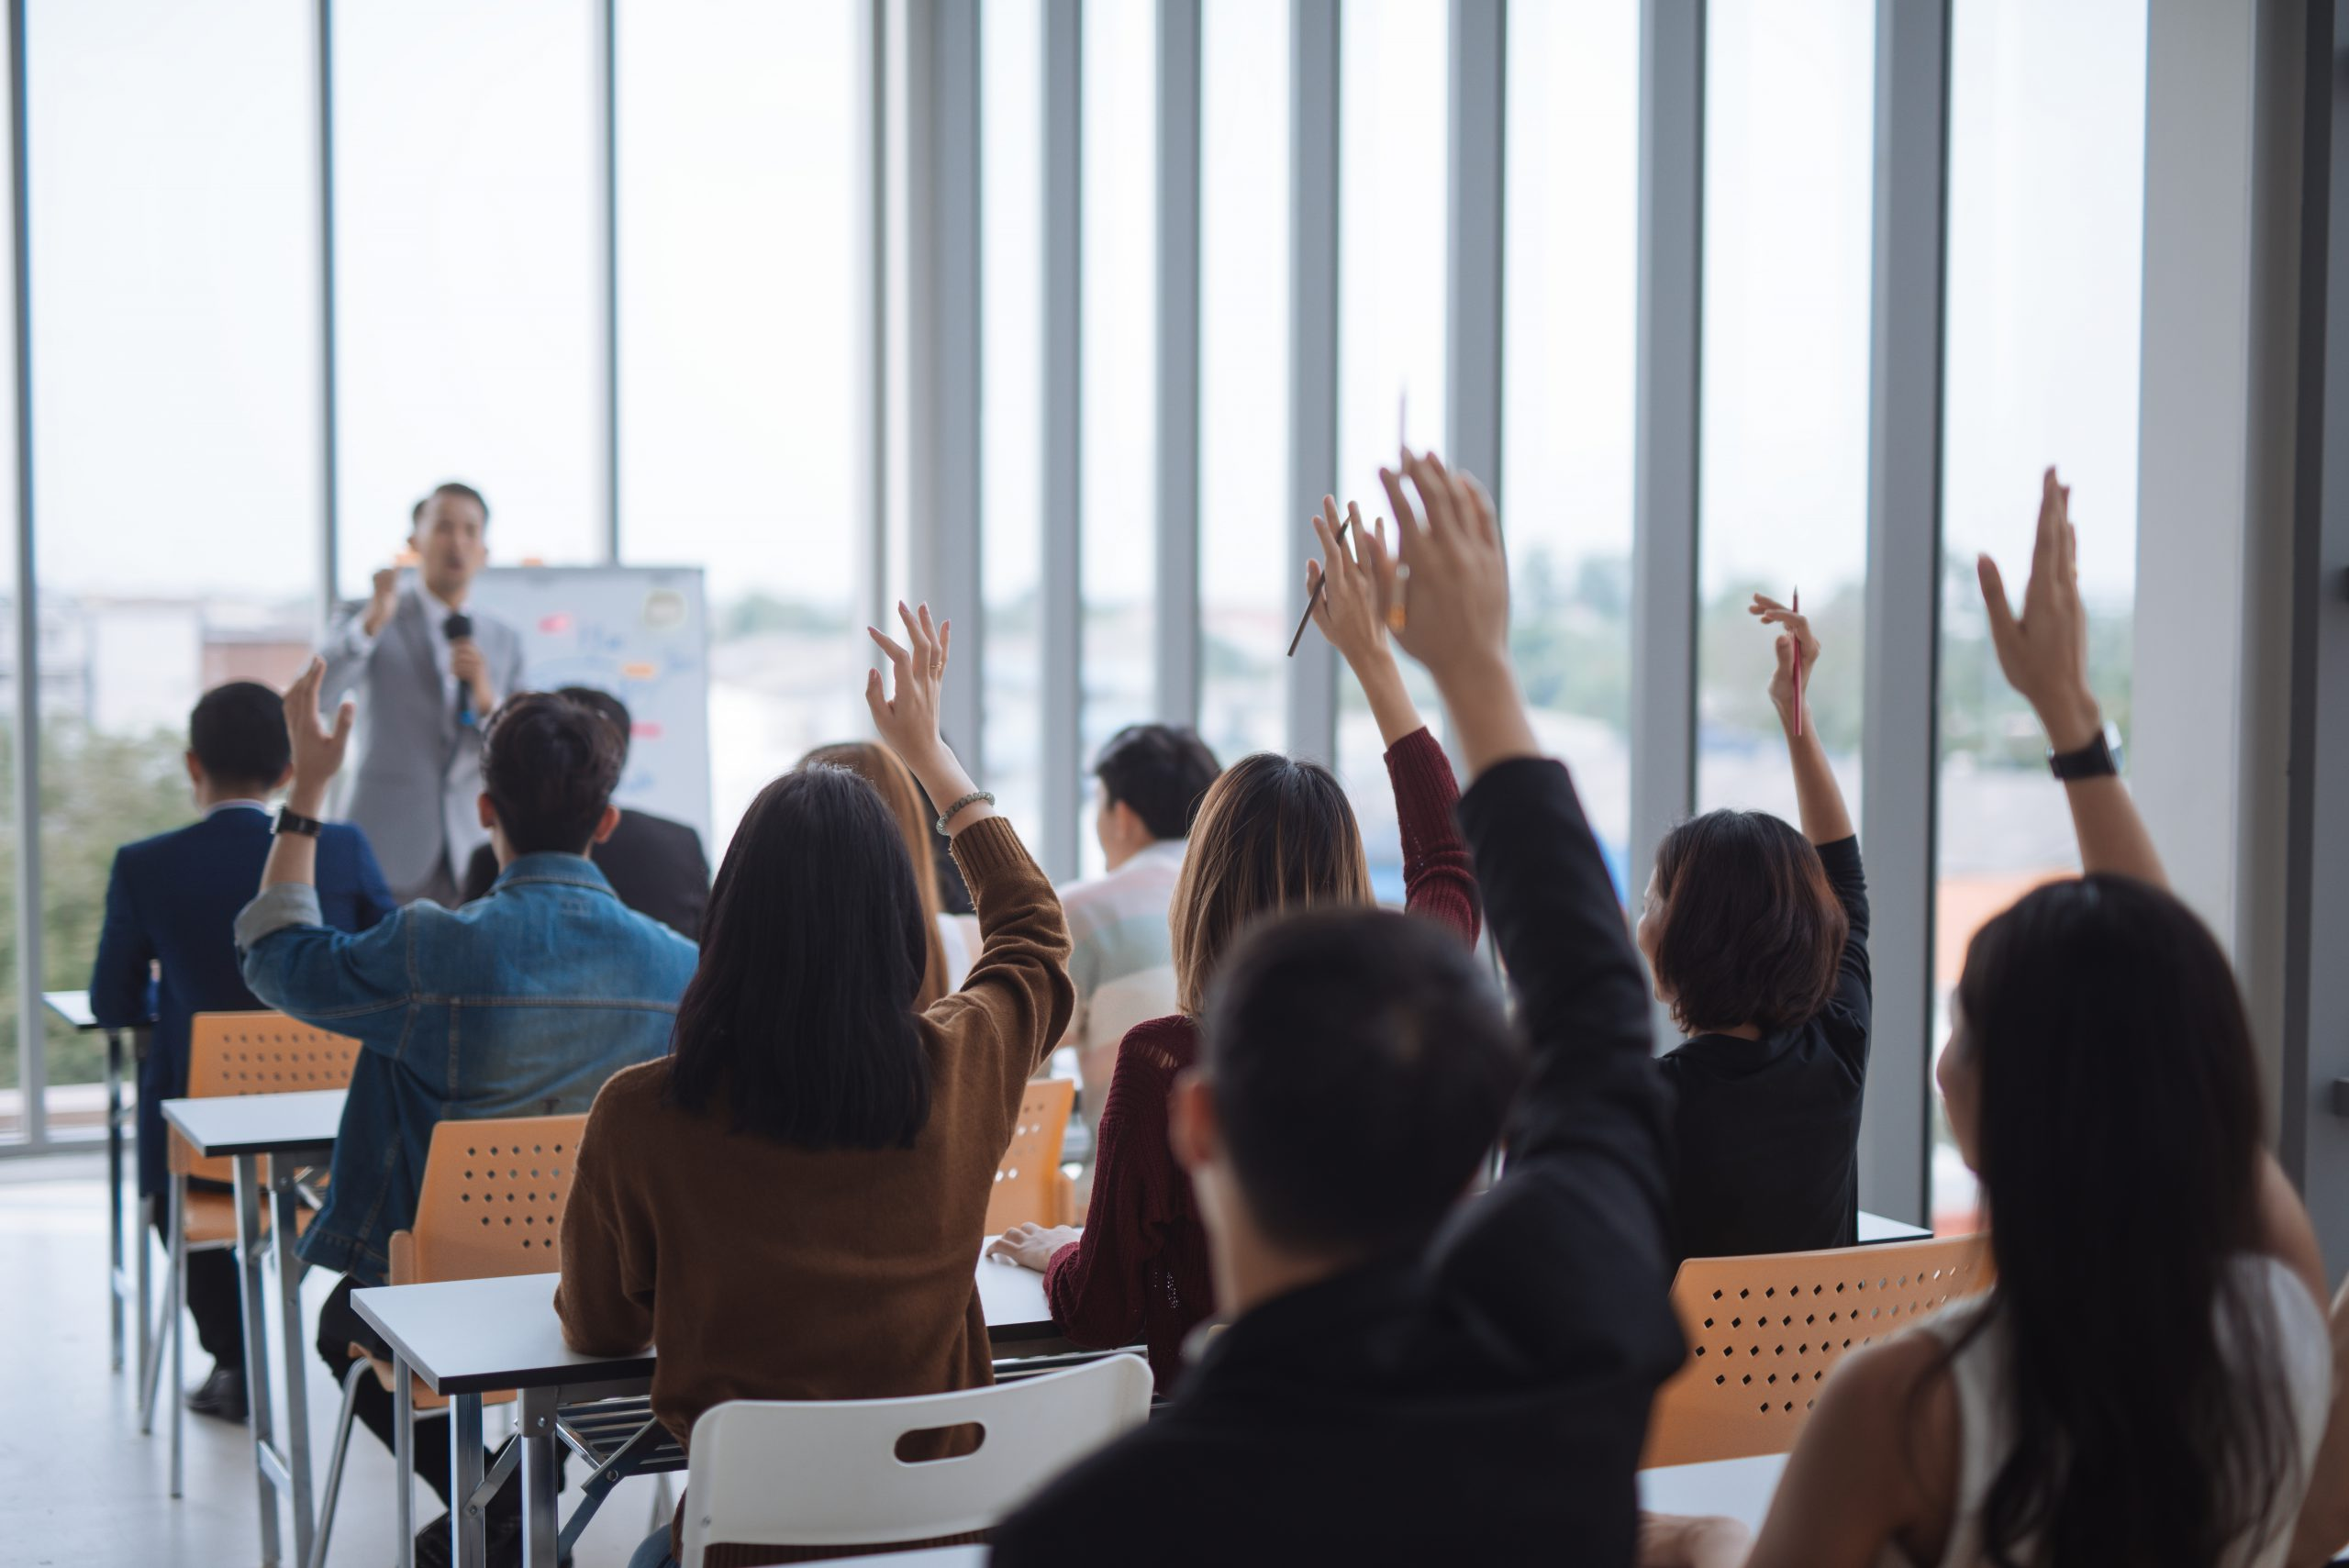 https://www.absolute-interpreting.co.uk/wp-content/uploads/2020/06/raised-up-hands-arms-large-group-seminar-class-room-agree-with-speaker-conference-seminar-meeting-room-scaled.jpg